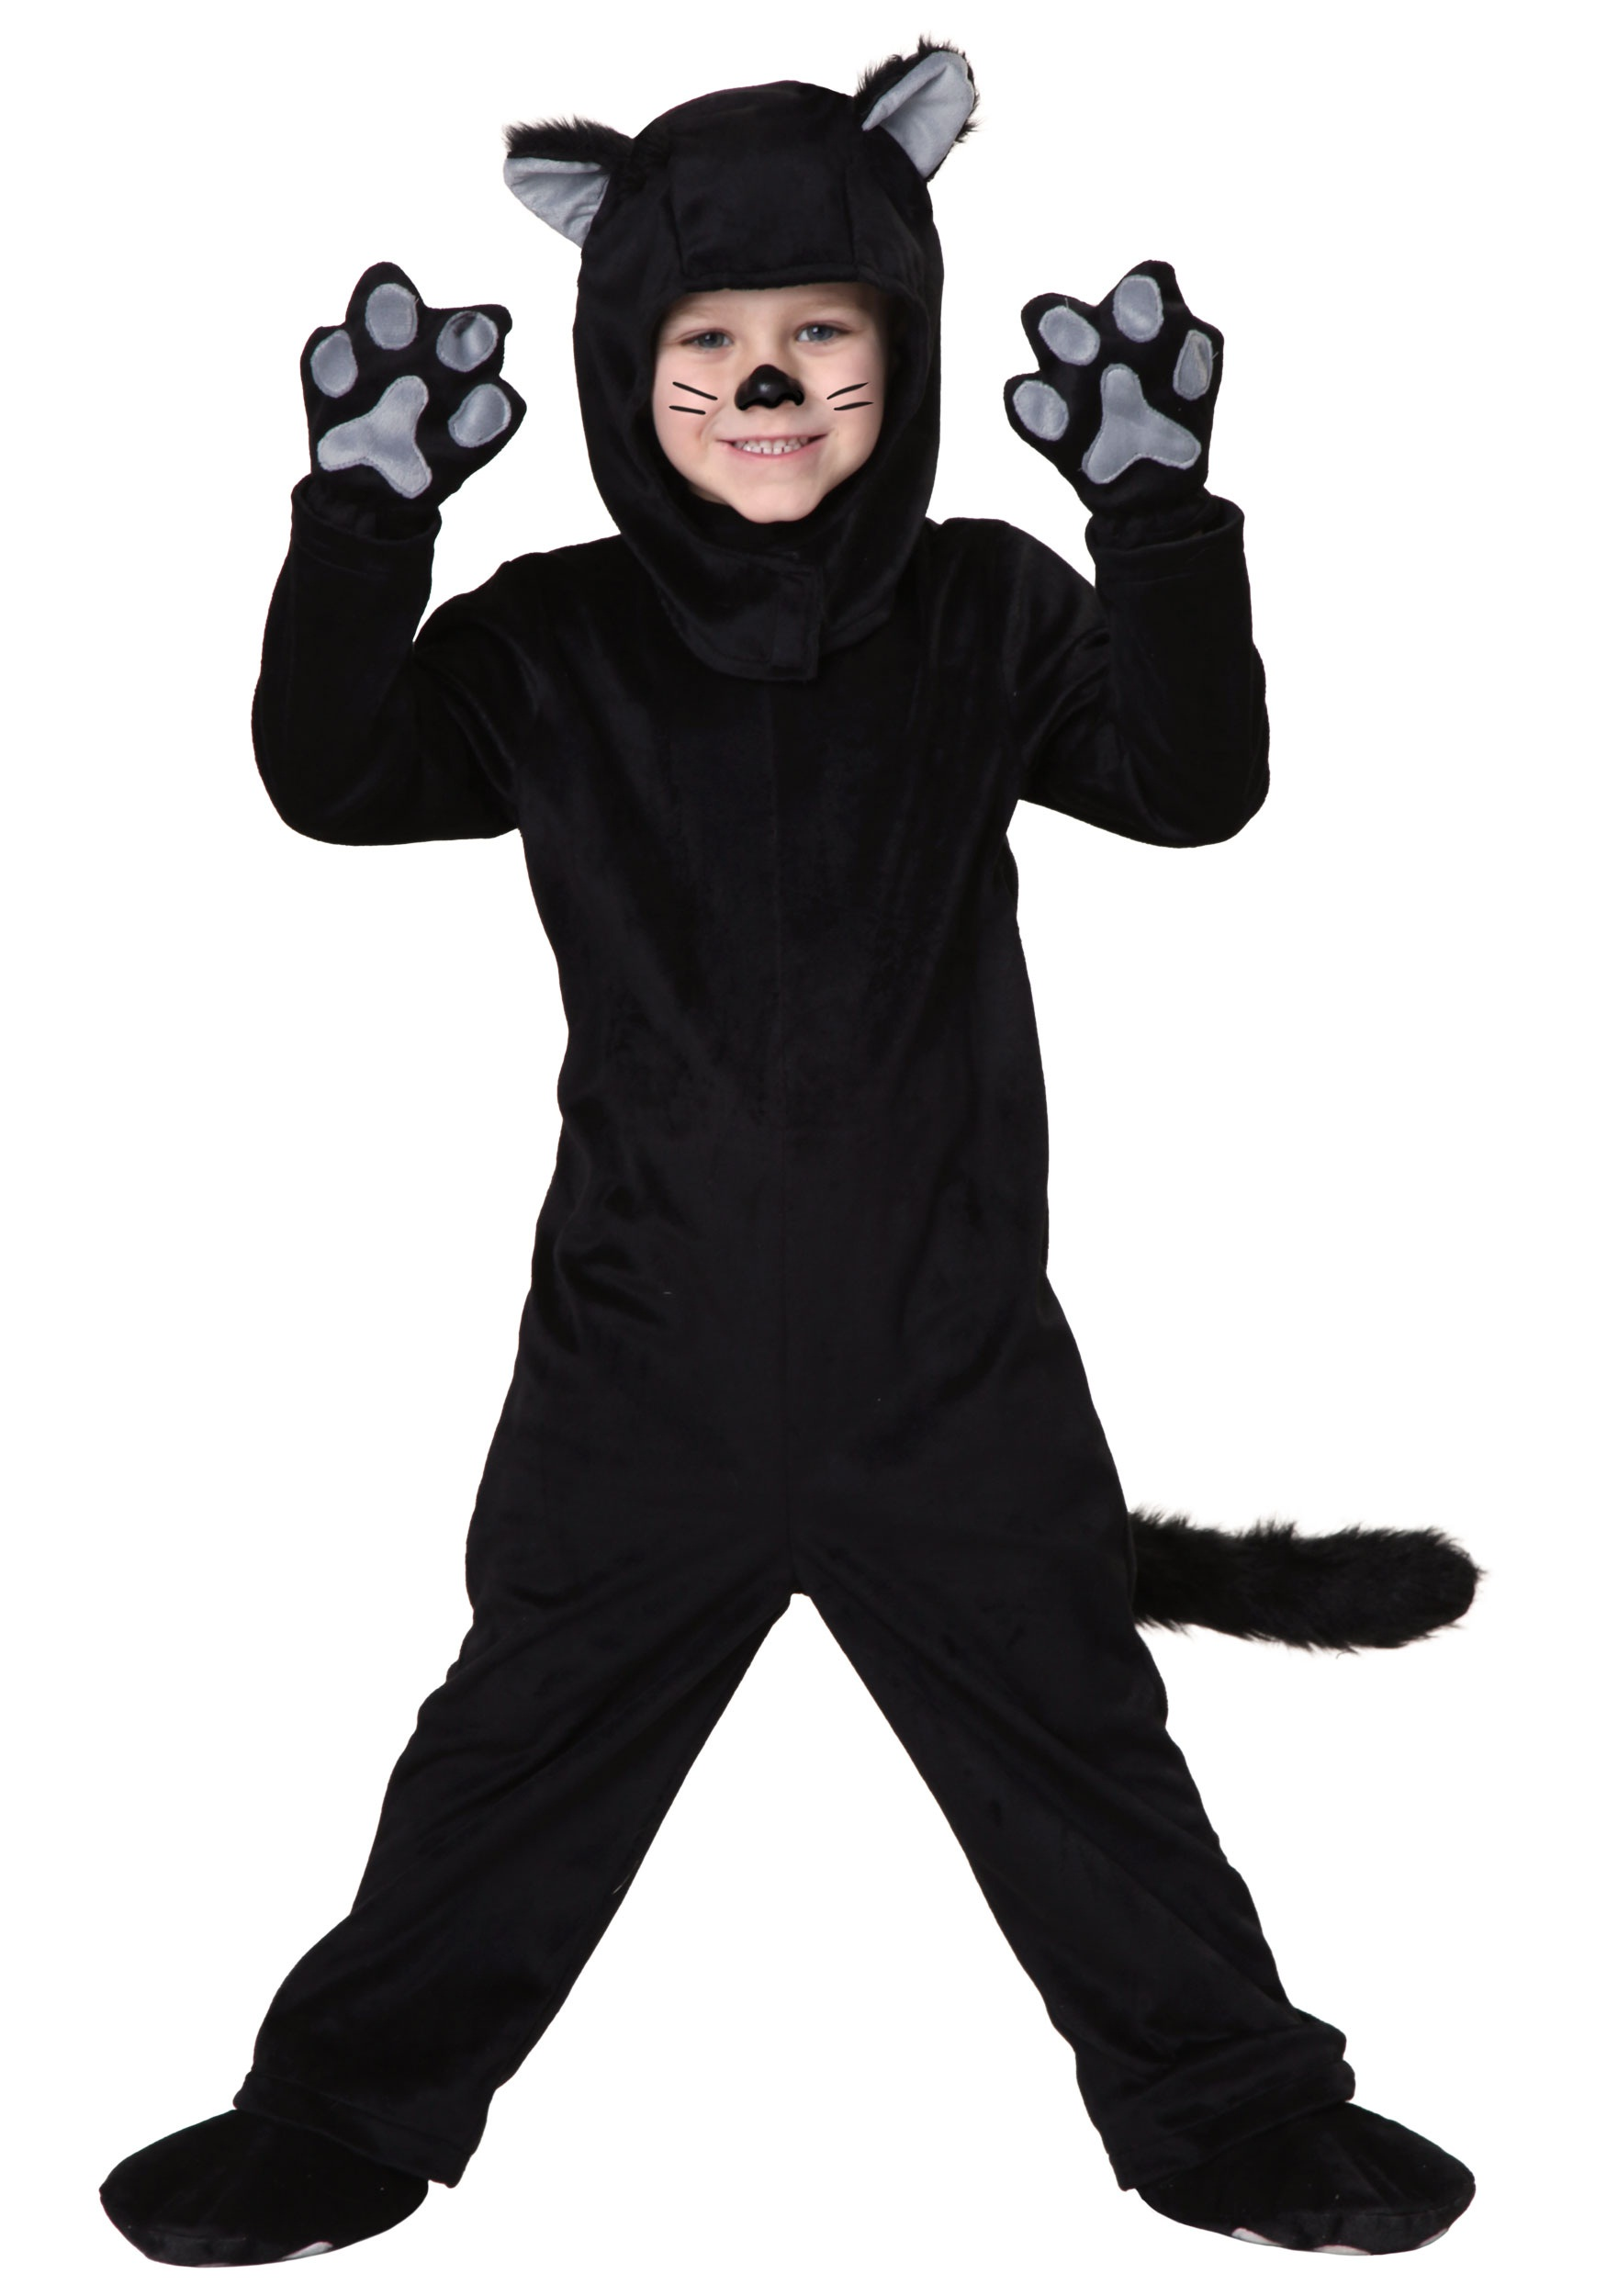 Cat Costumes. Party & Occasions. Halloween. Cat Costumes. Showing 40 of results that match your query. Product - Infant Mini Meow Cat Costume by Incharacter Costumes LLC Product Image. Price $ 85 - $ Product Title. Infant Mini Meow Cat Costume by Incharacter Costume s .